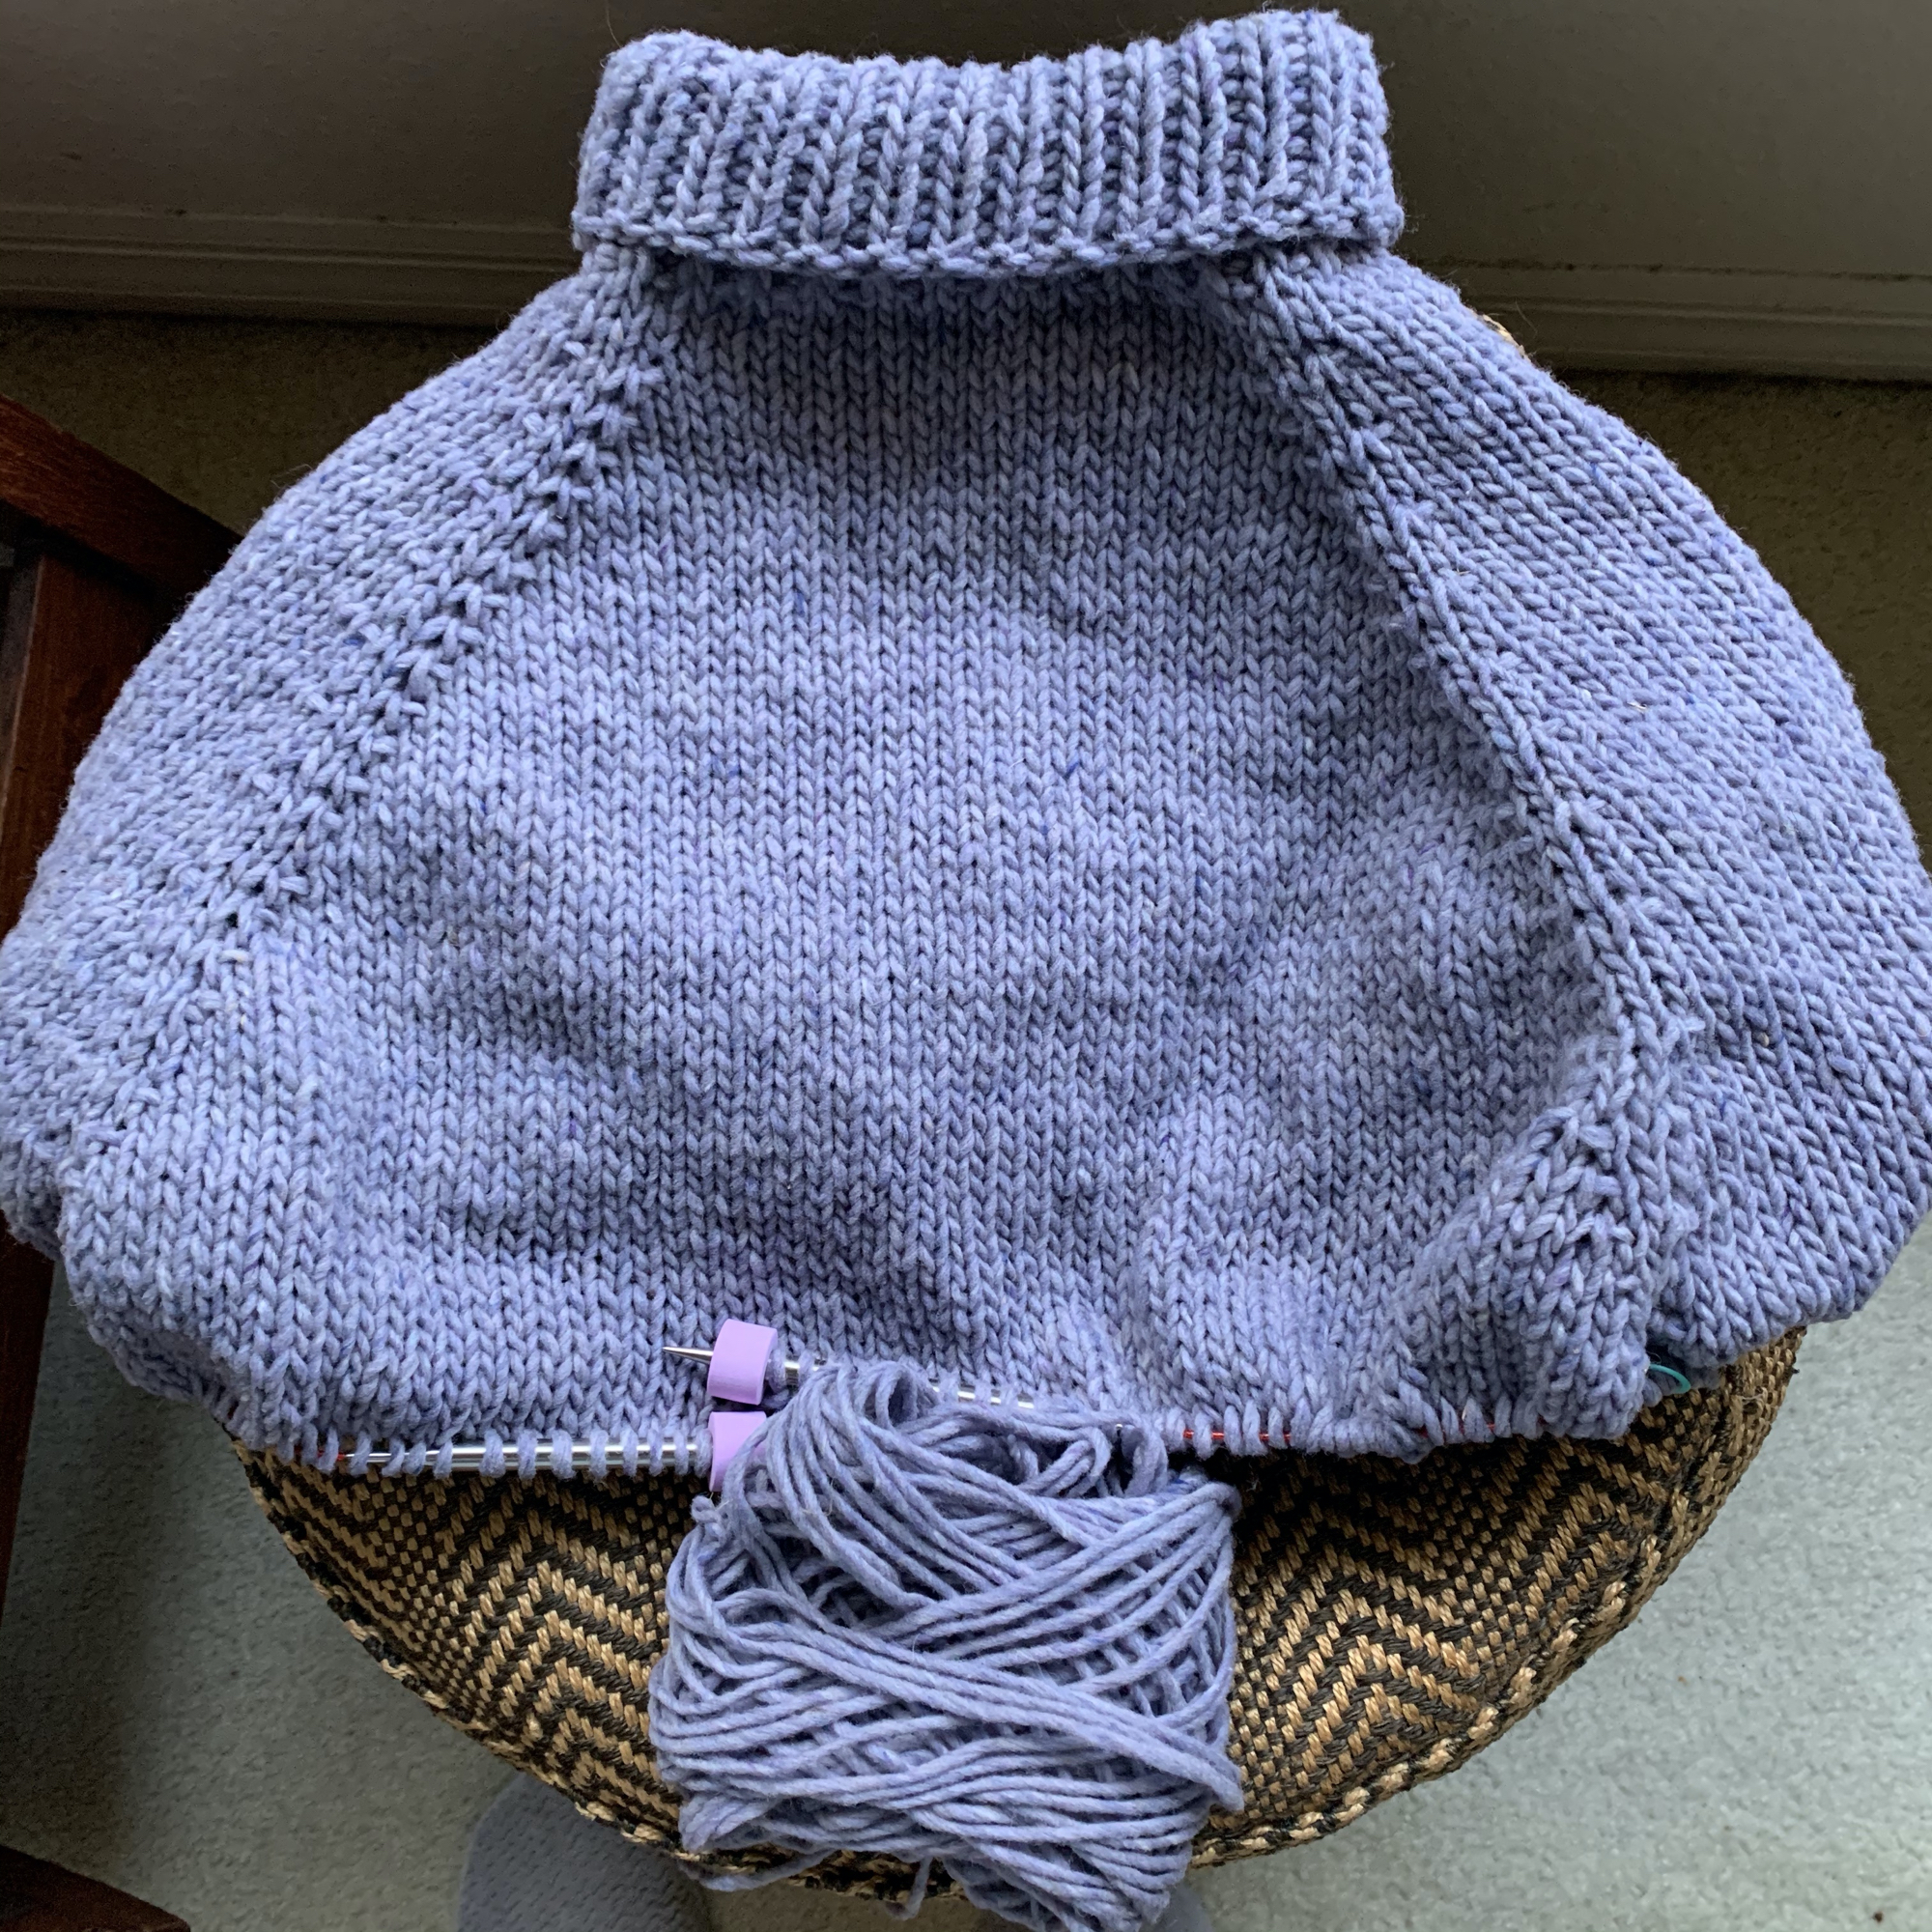 Turtle Dove sweater knitting